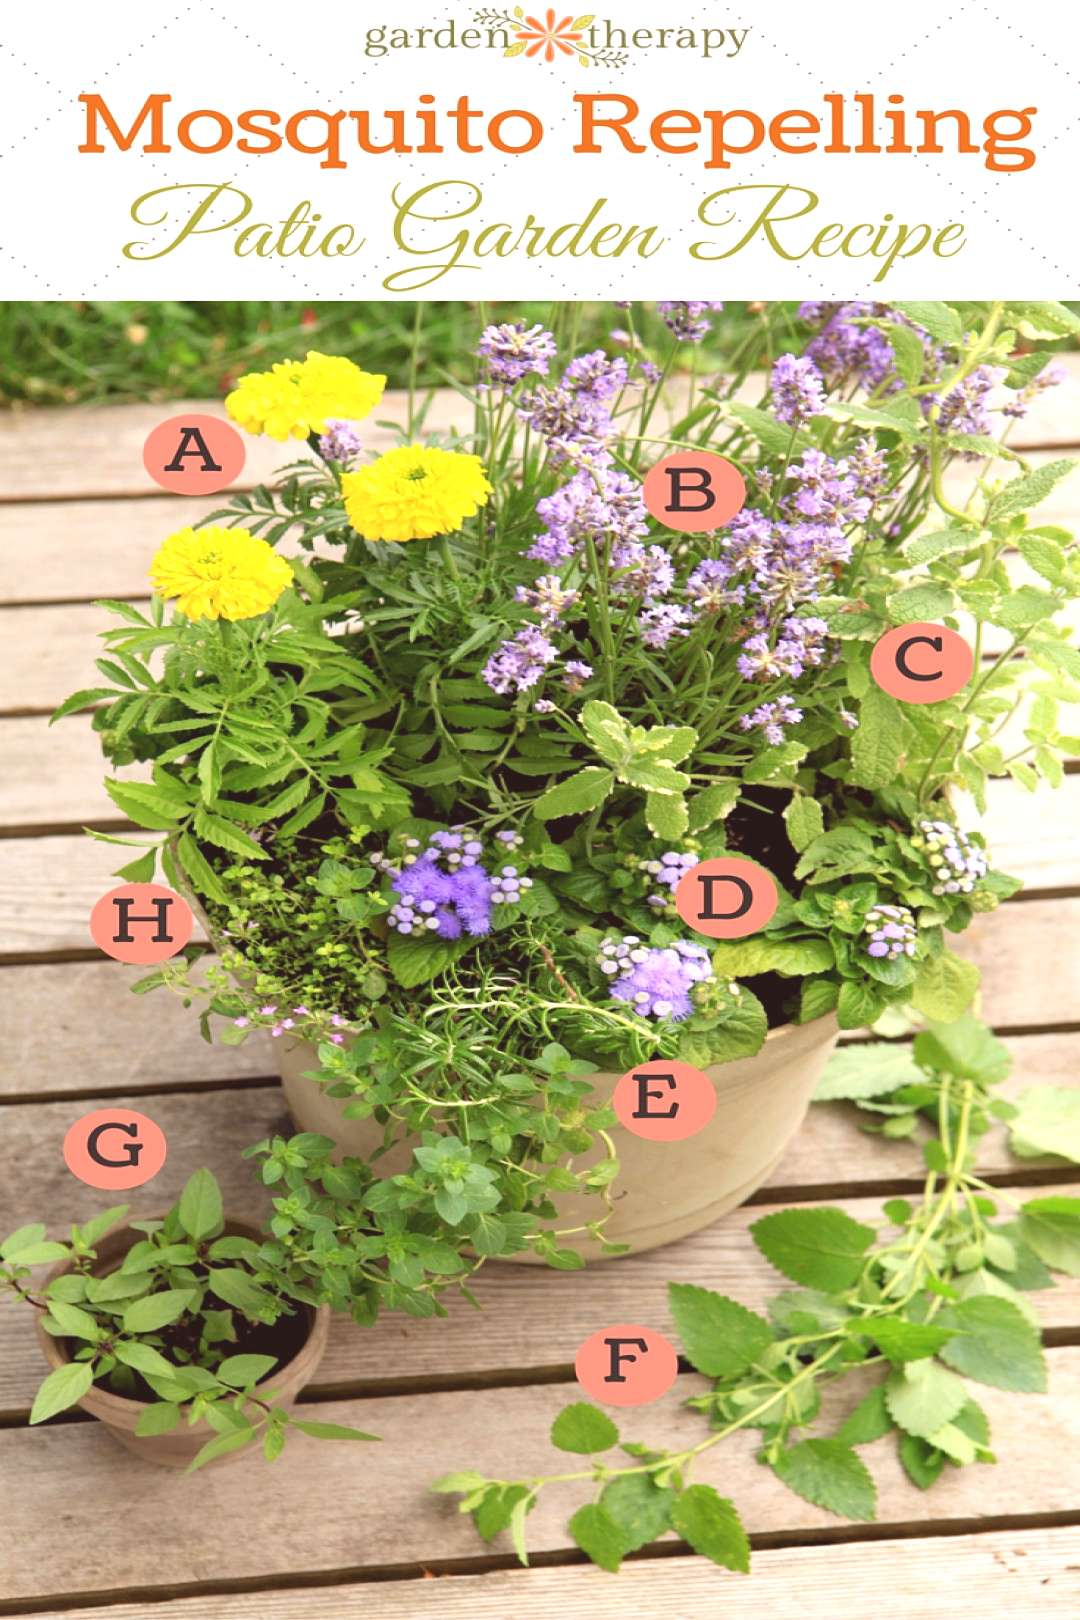 Plant a Mosquito-Repelling Container Garden to Protect Entertaining Spaces   Garden Therapy